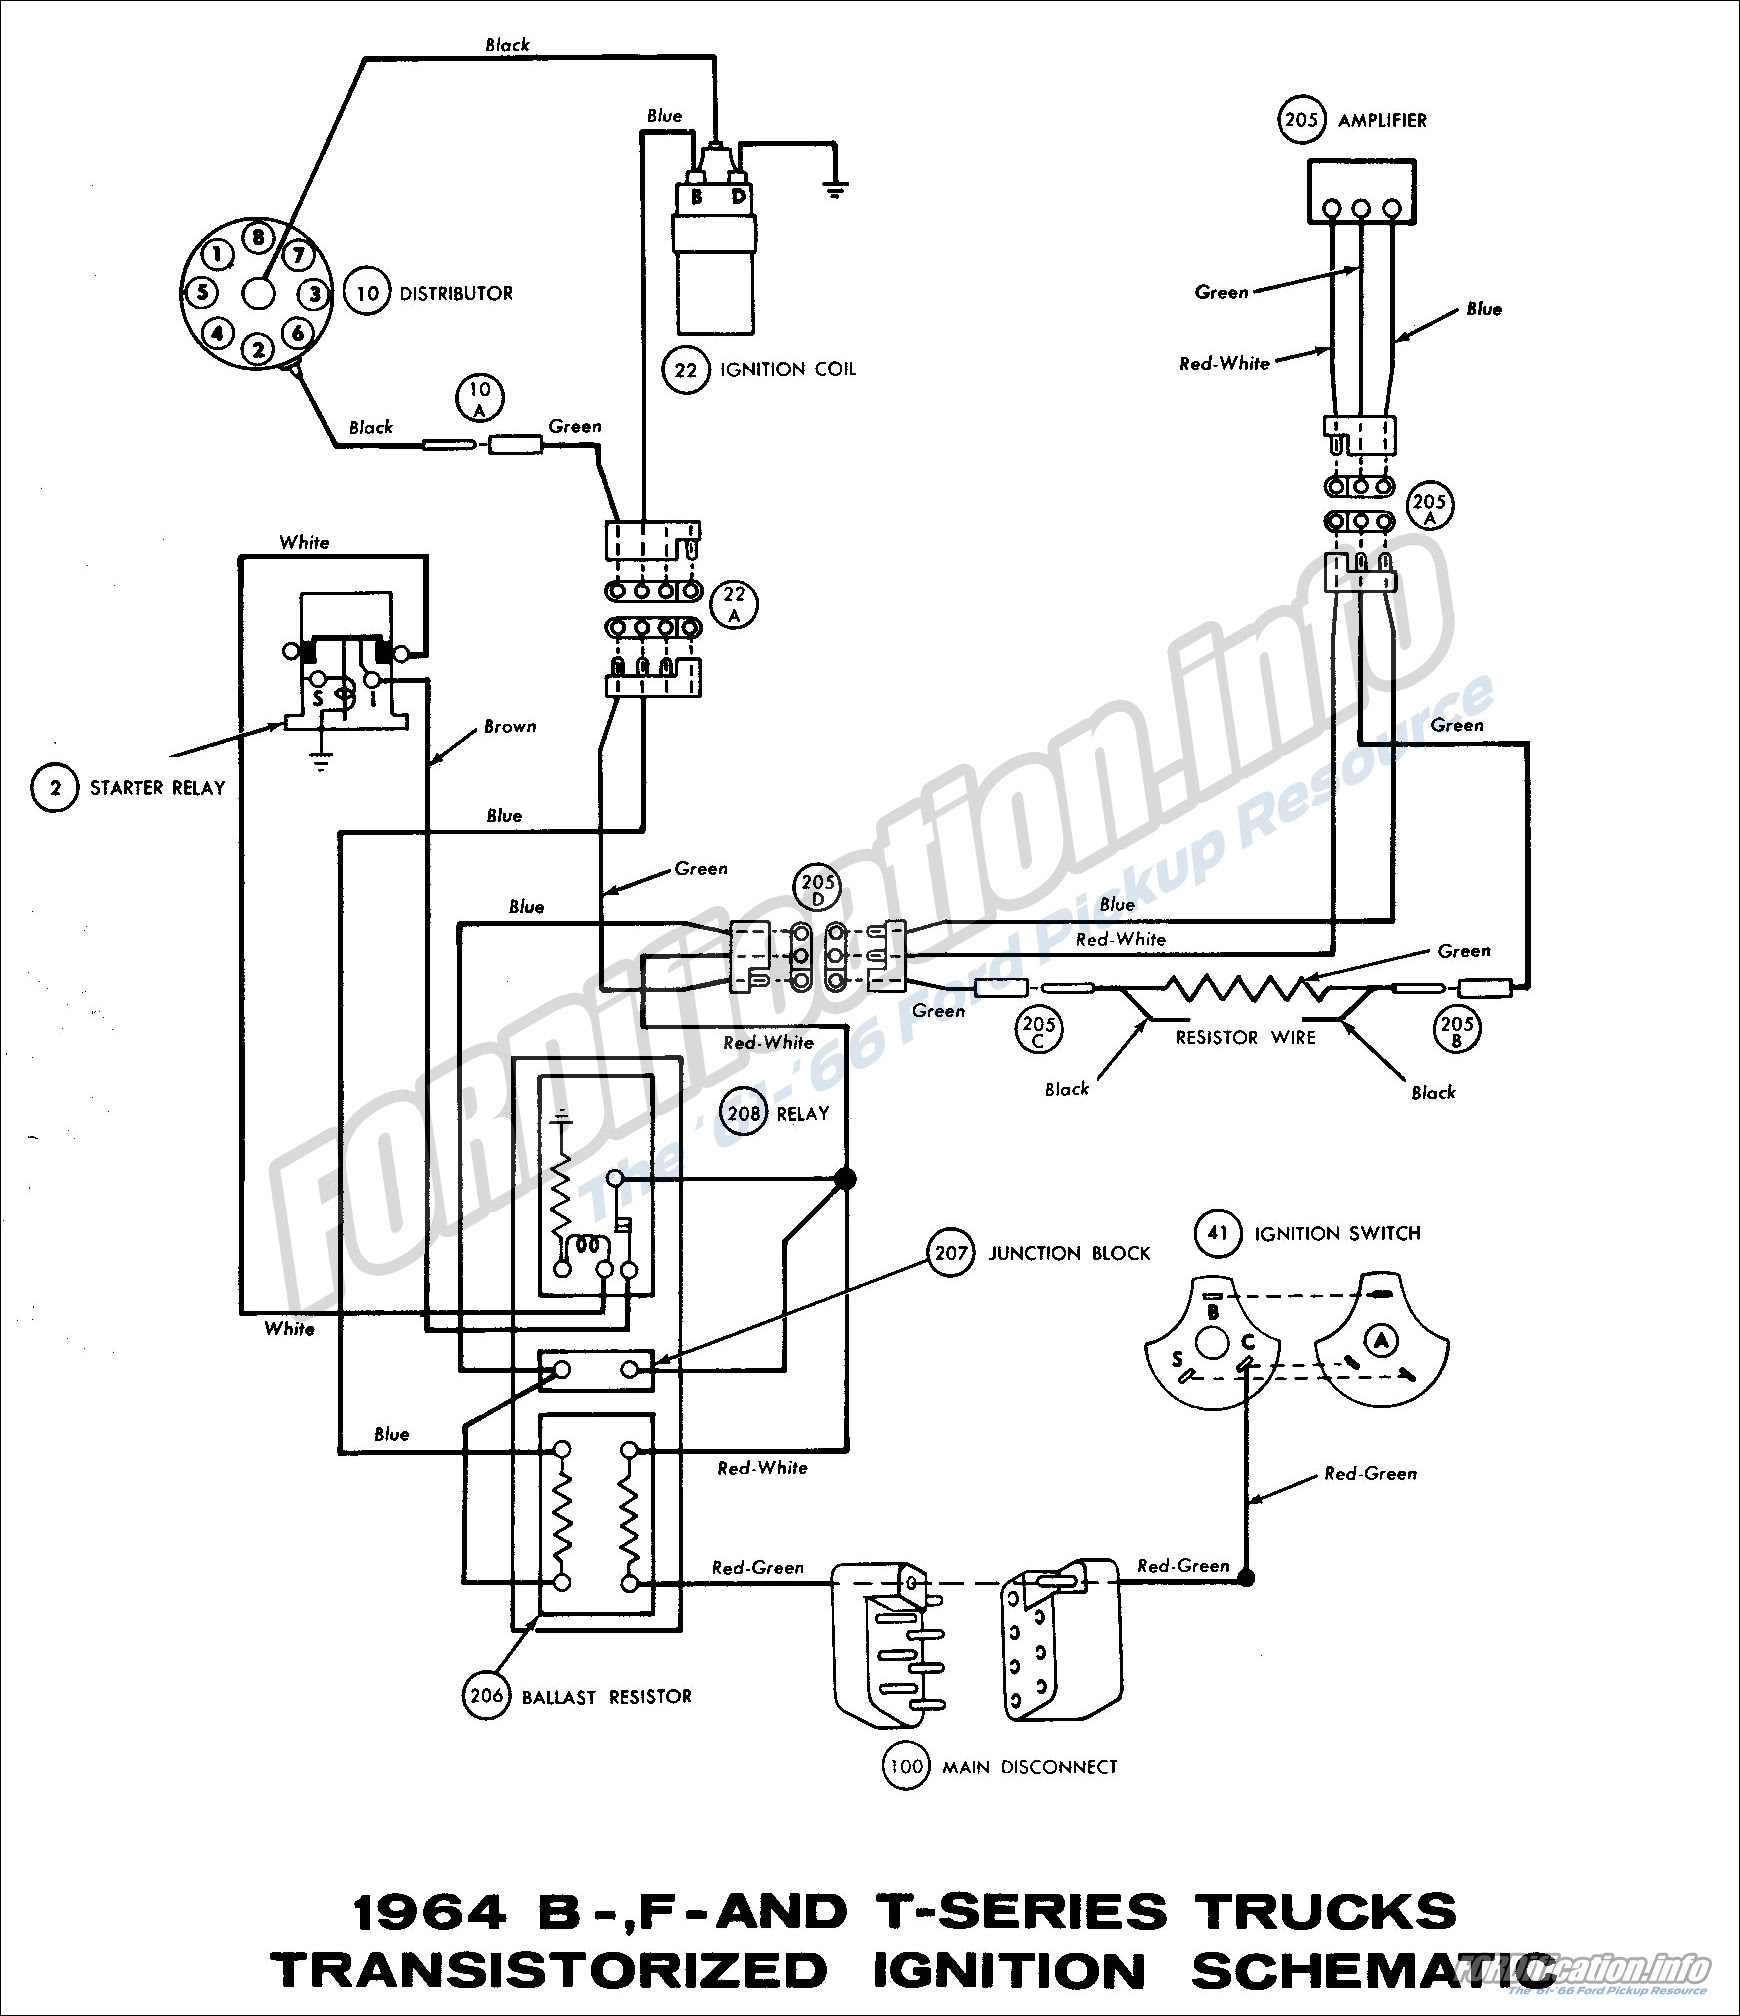 For 1967 Ford Galaxie 500 Wiring Diagram - espressorose